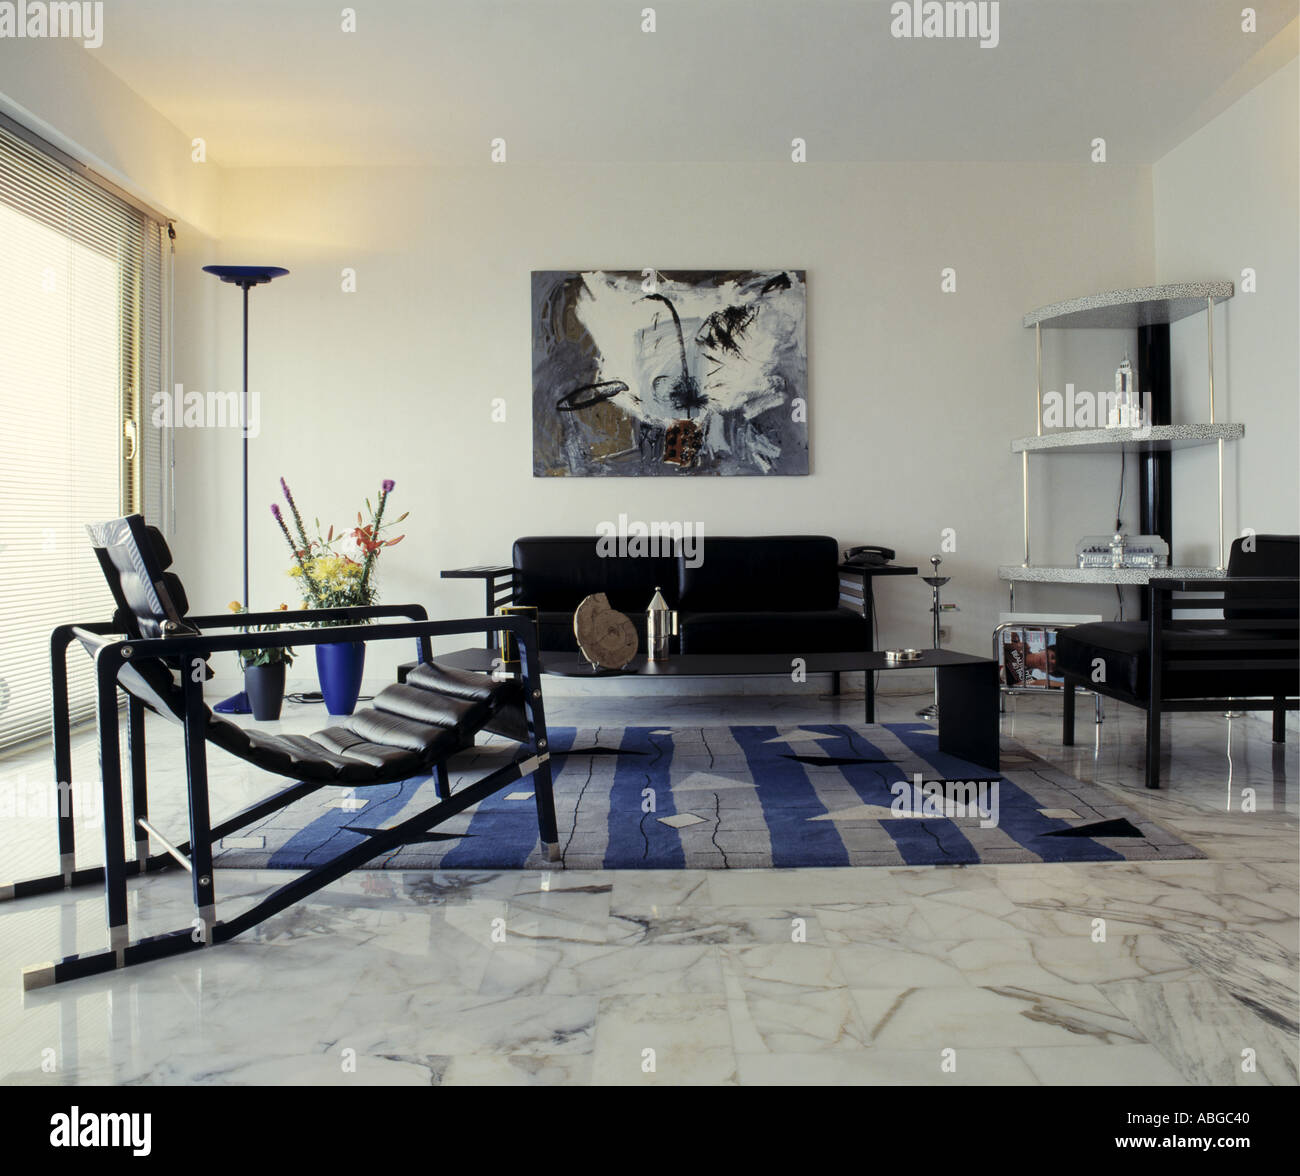 Striped Rug In Living Room Marble Floor And Black Reclining Chair In Modern White Sixties